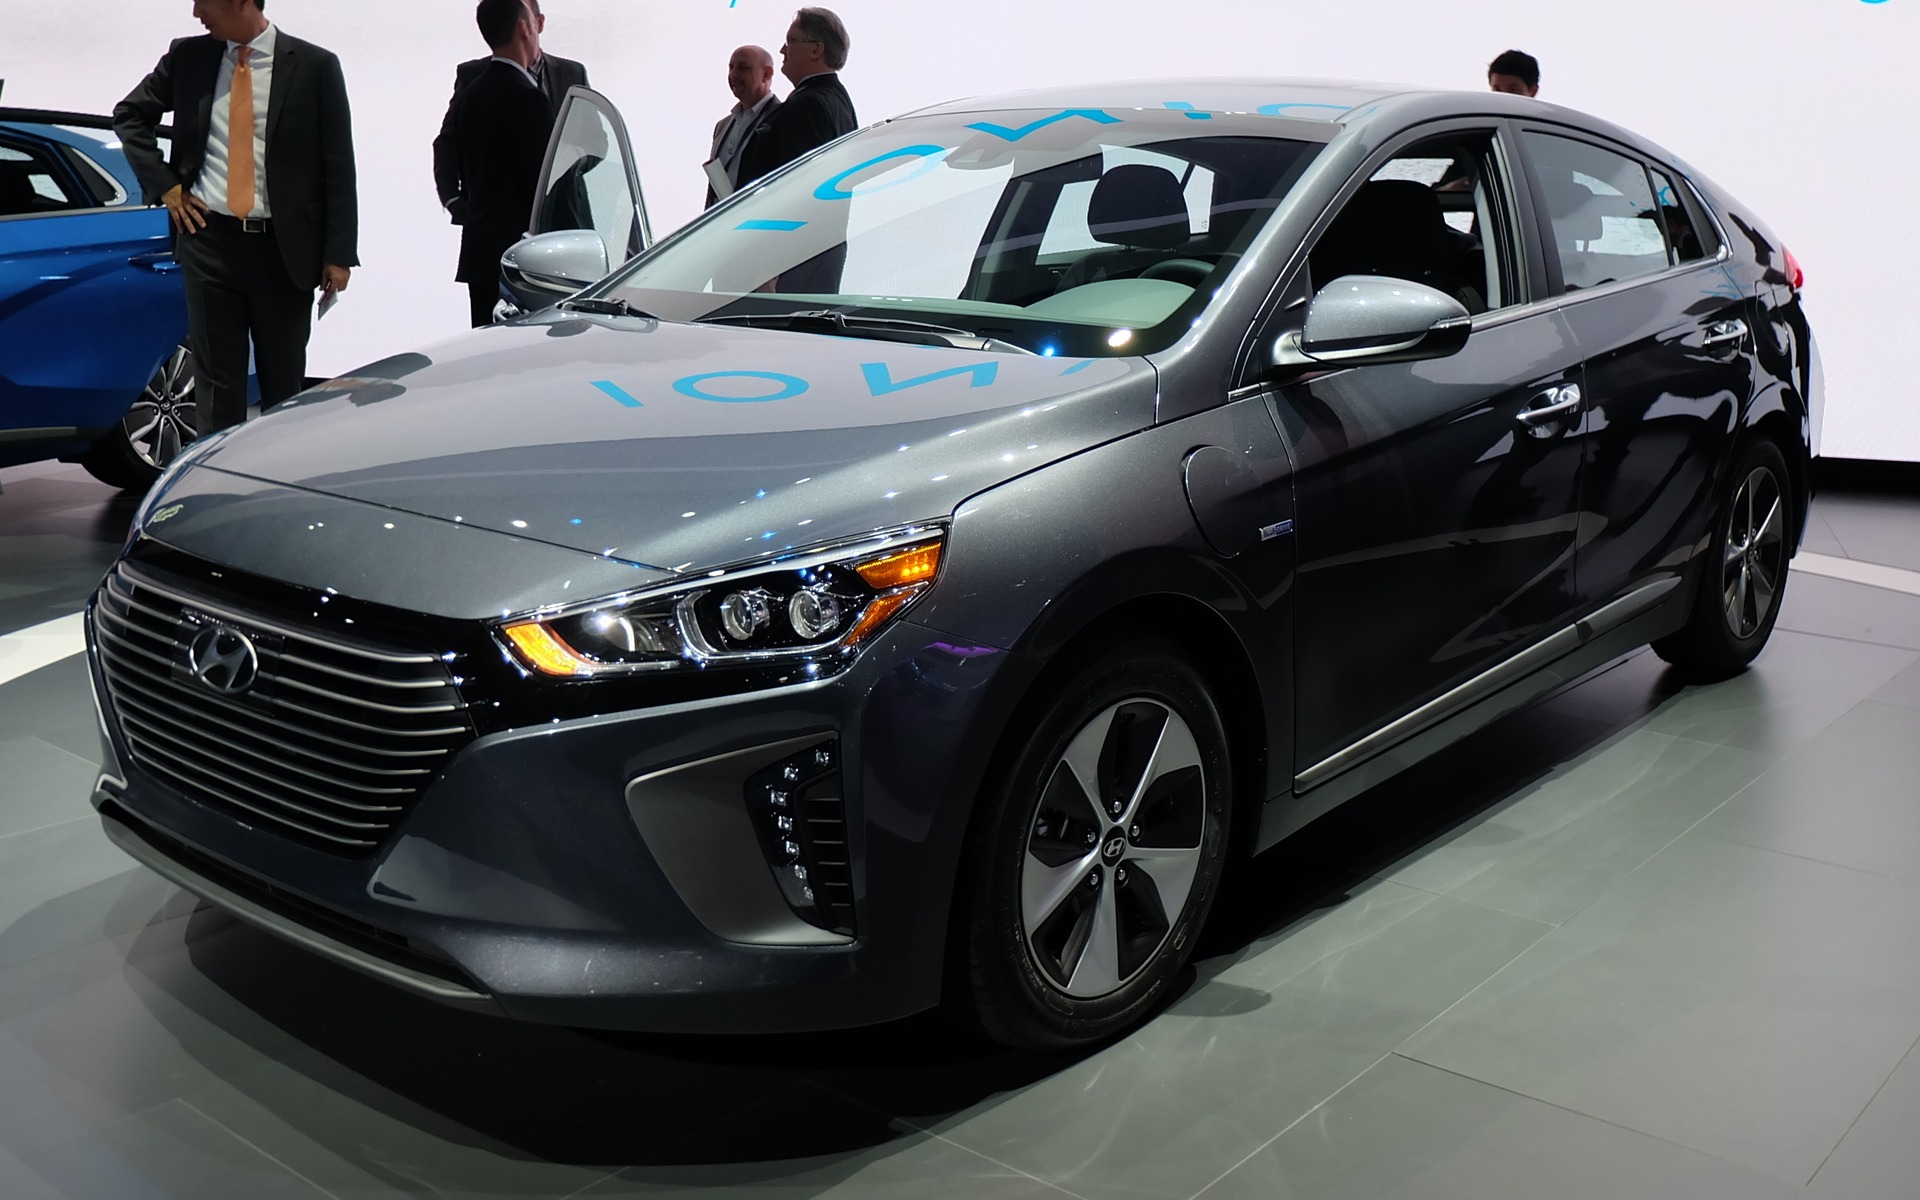 2018 Hyundai i ioniq Concept photo - 1